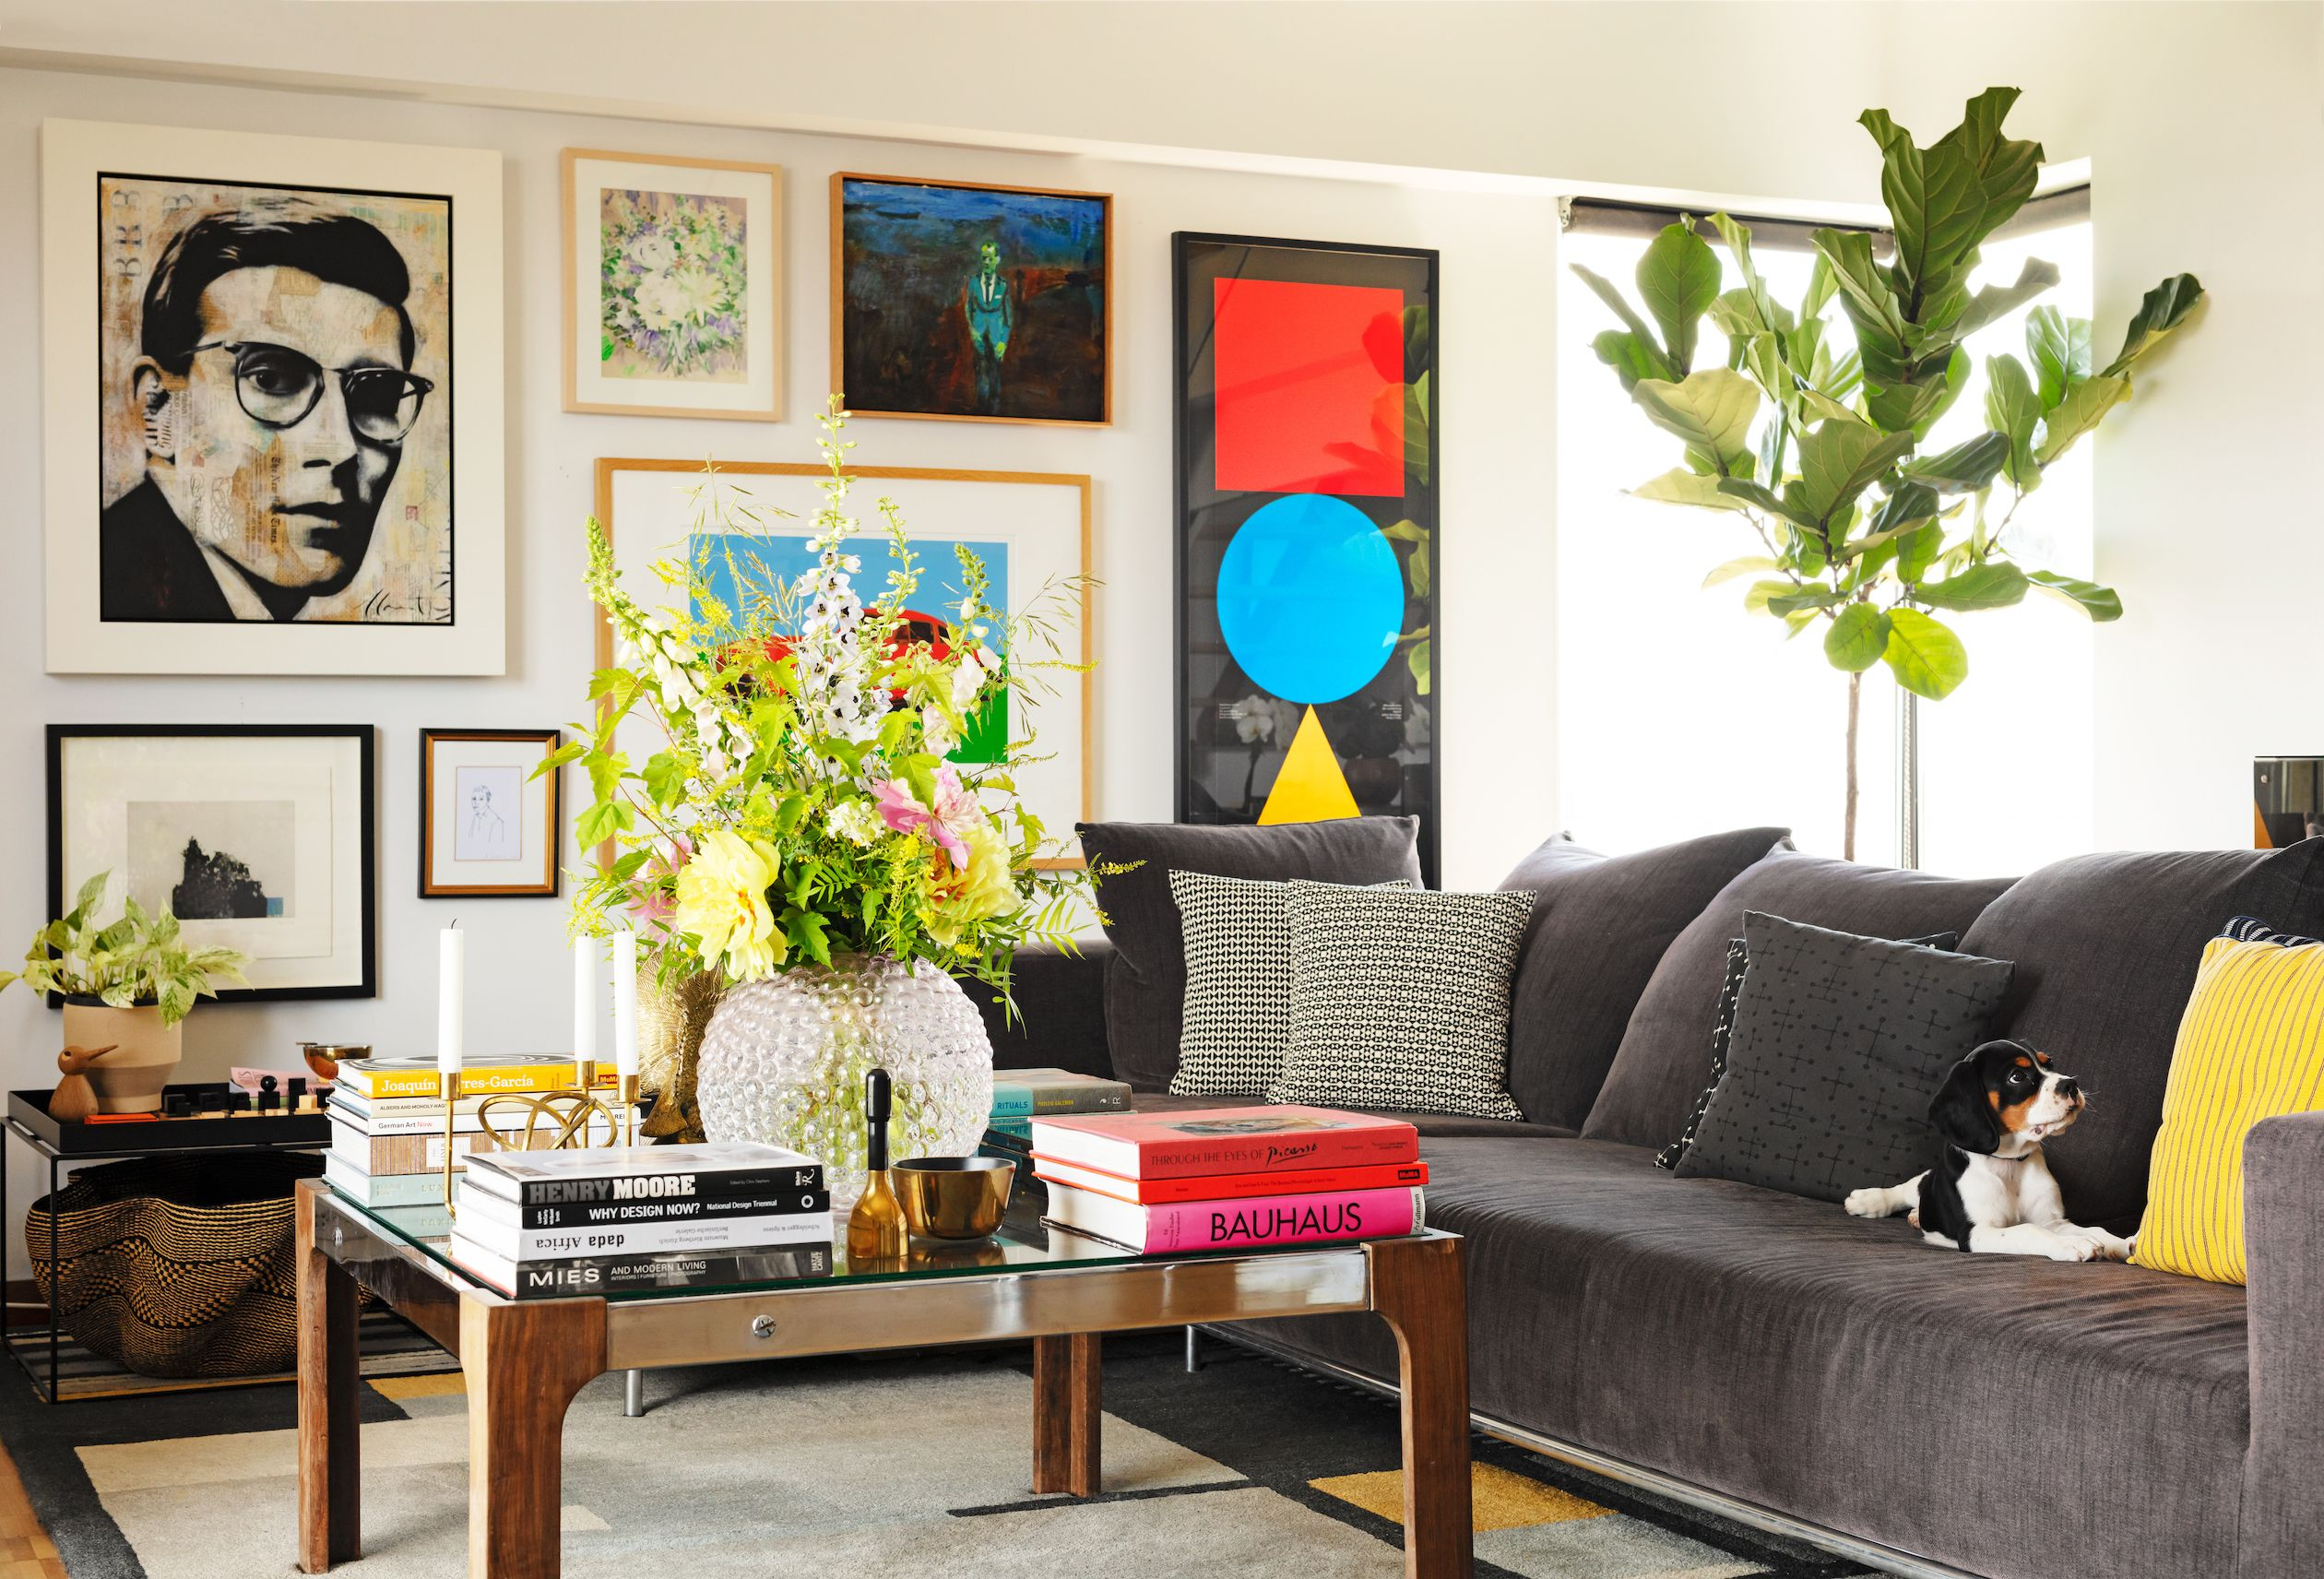 Hands down the Best Home Decor Ideas for Your First Home